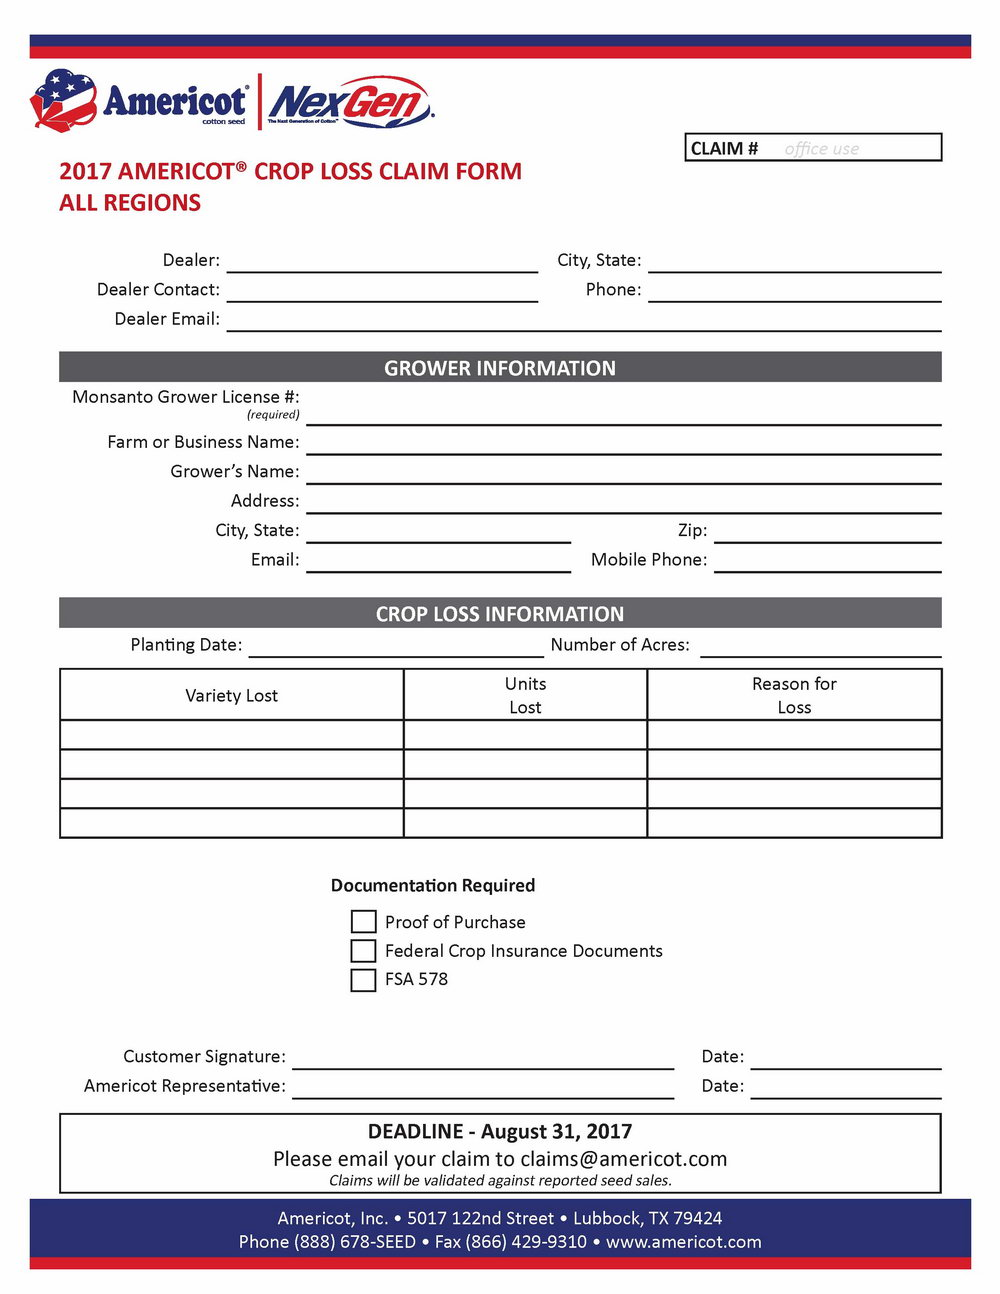 Cms 1500 Forms Staples